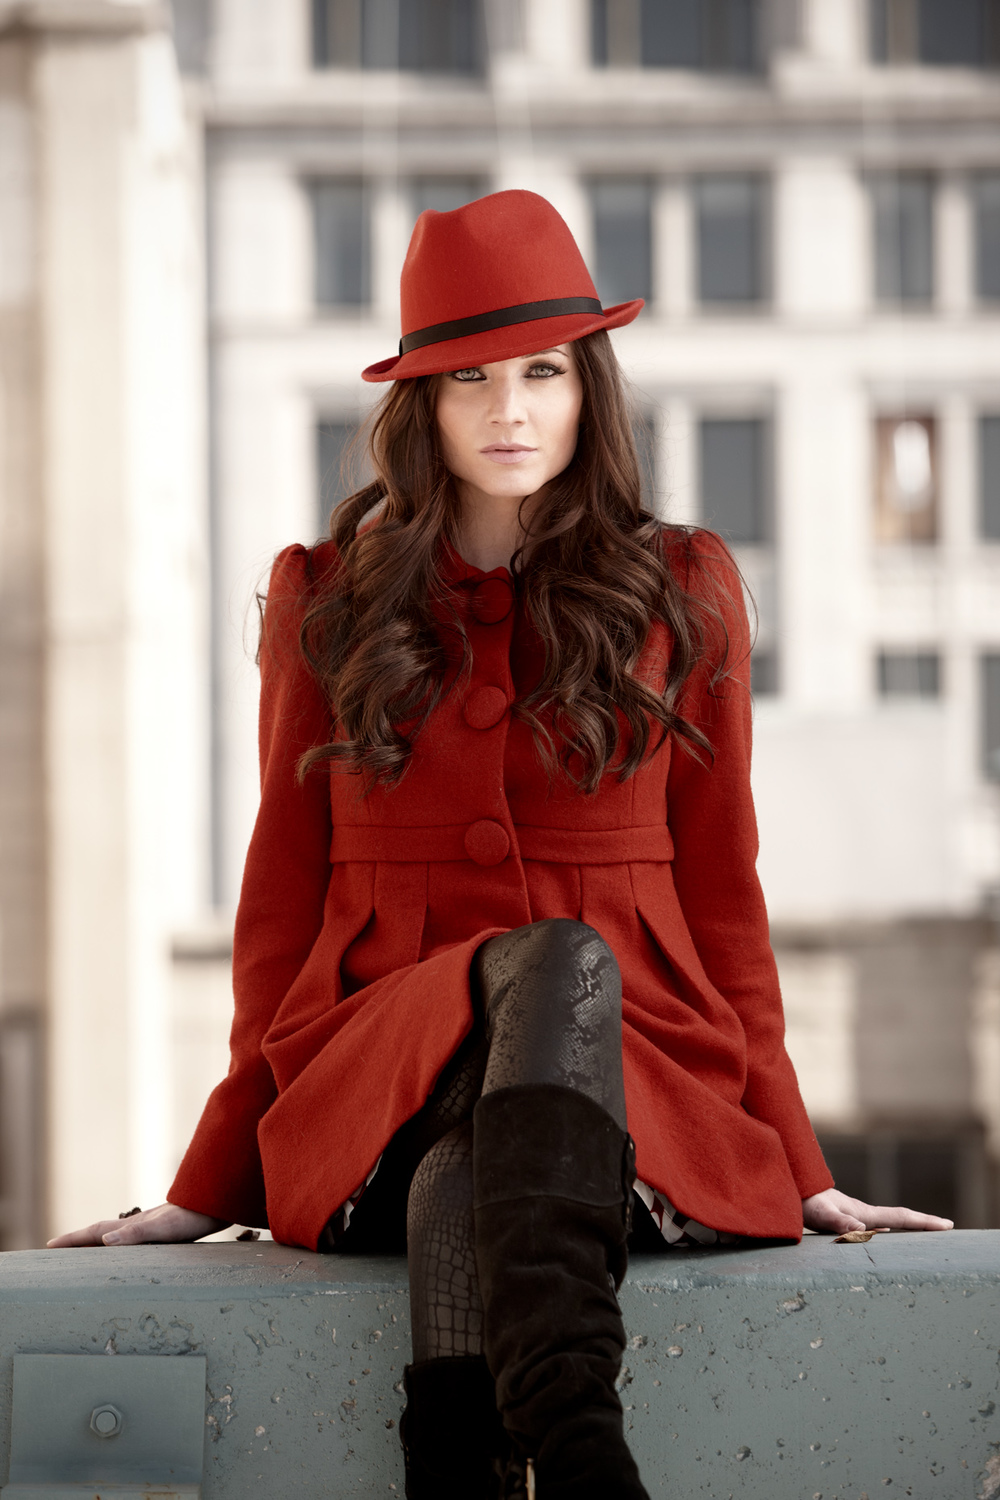 Lifestyle photography Derek Israelsen Red Hat Coat